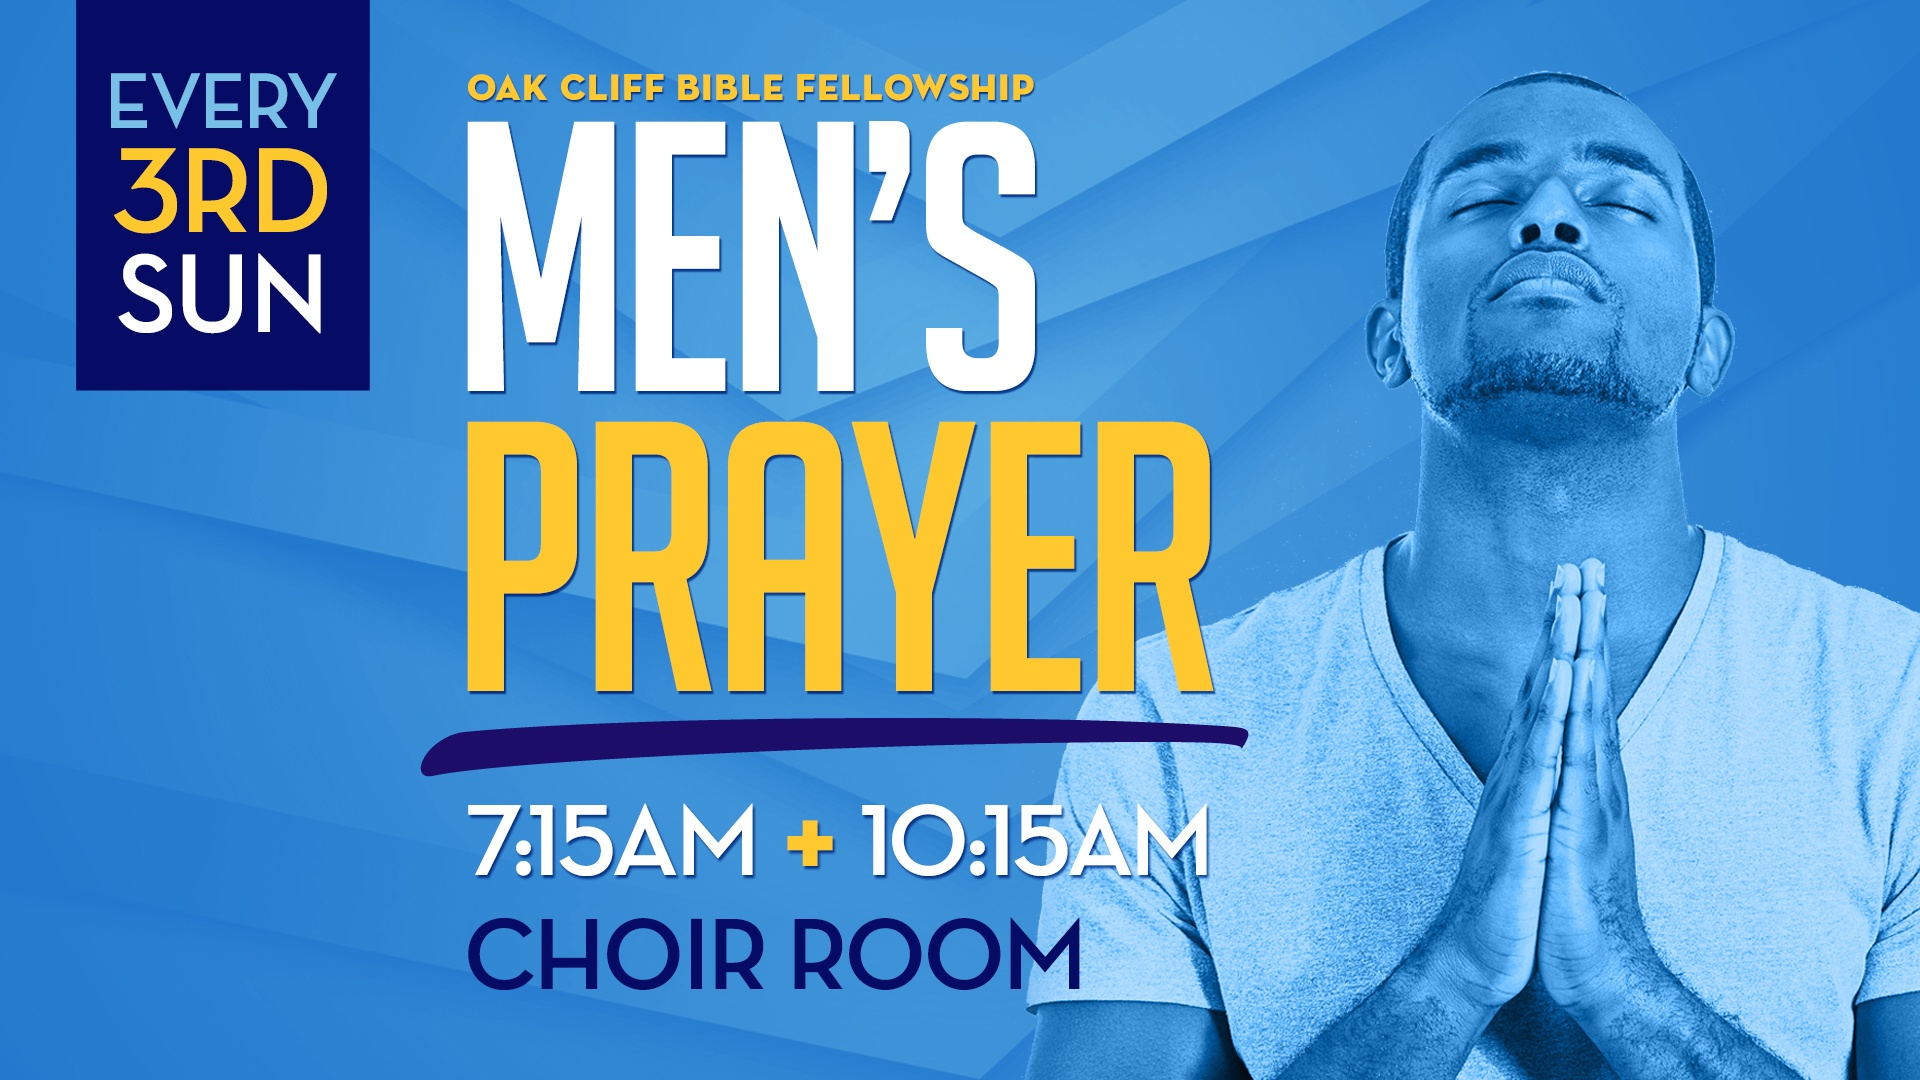 Men's prayer every 3rd Sunday